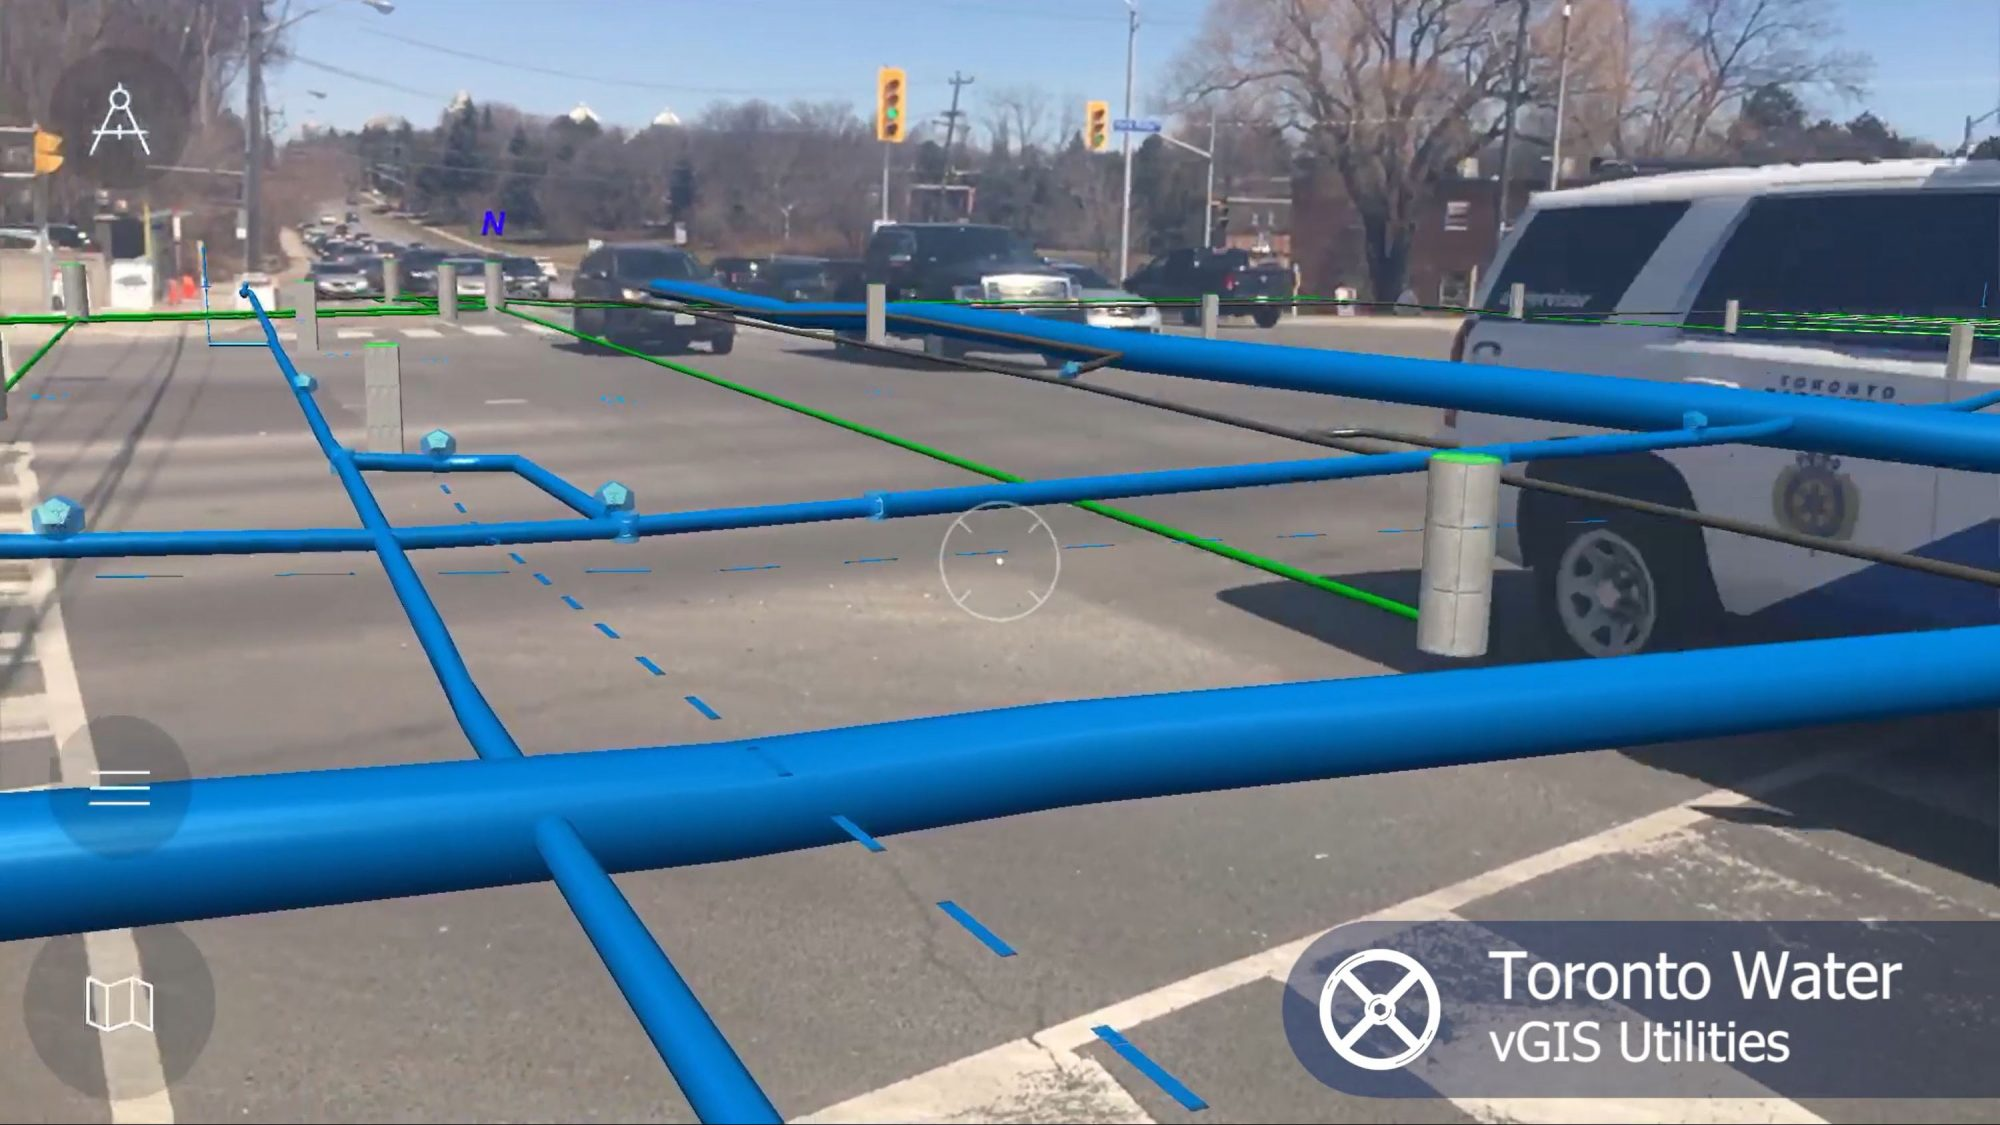 Toronto Water - vGIS augmented reality view